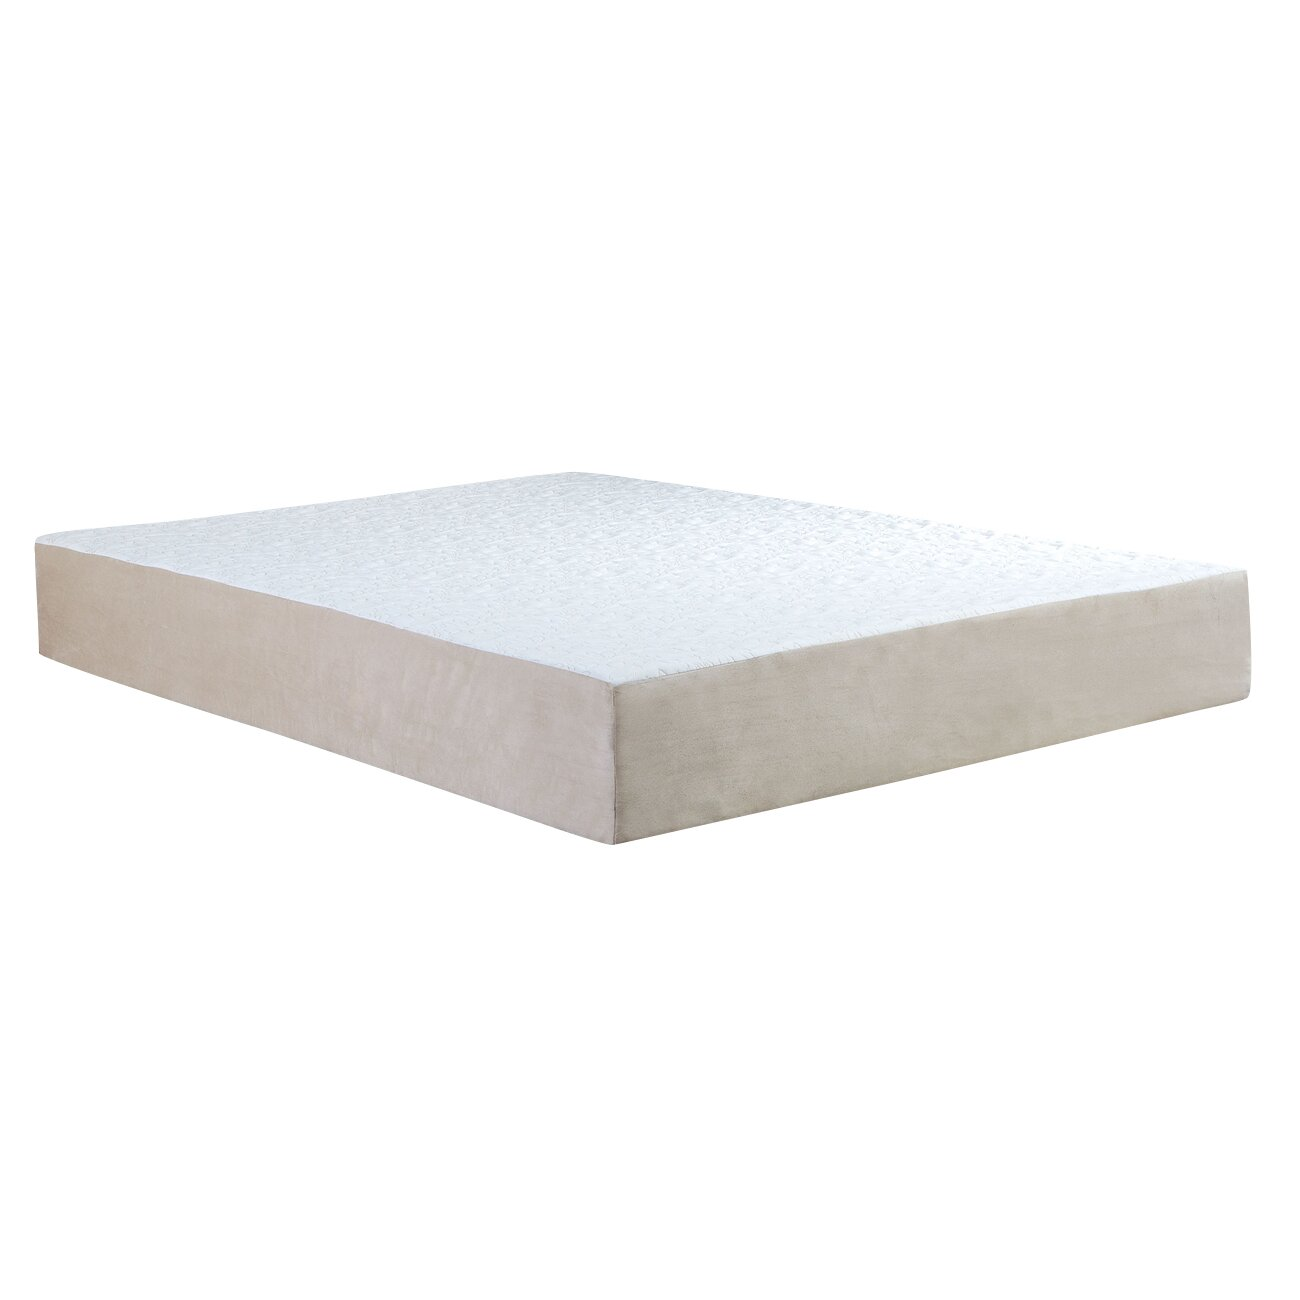 classic brands 10 memory foam mattress reviews